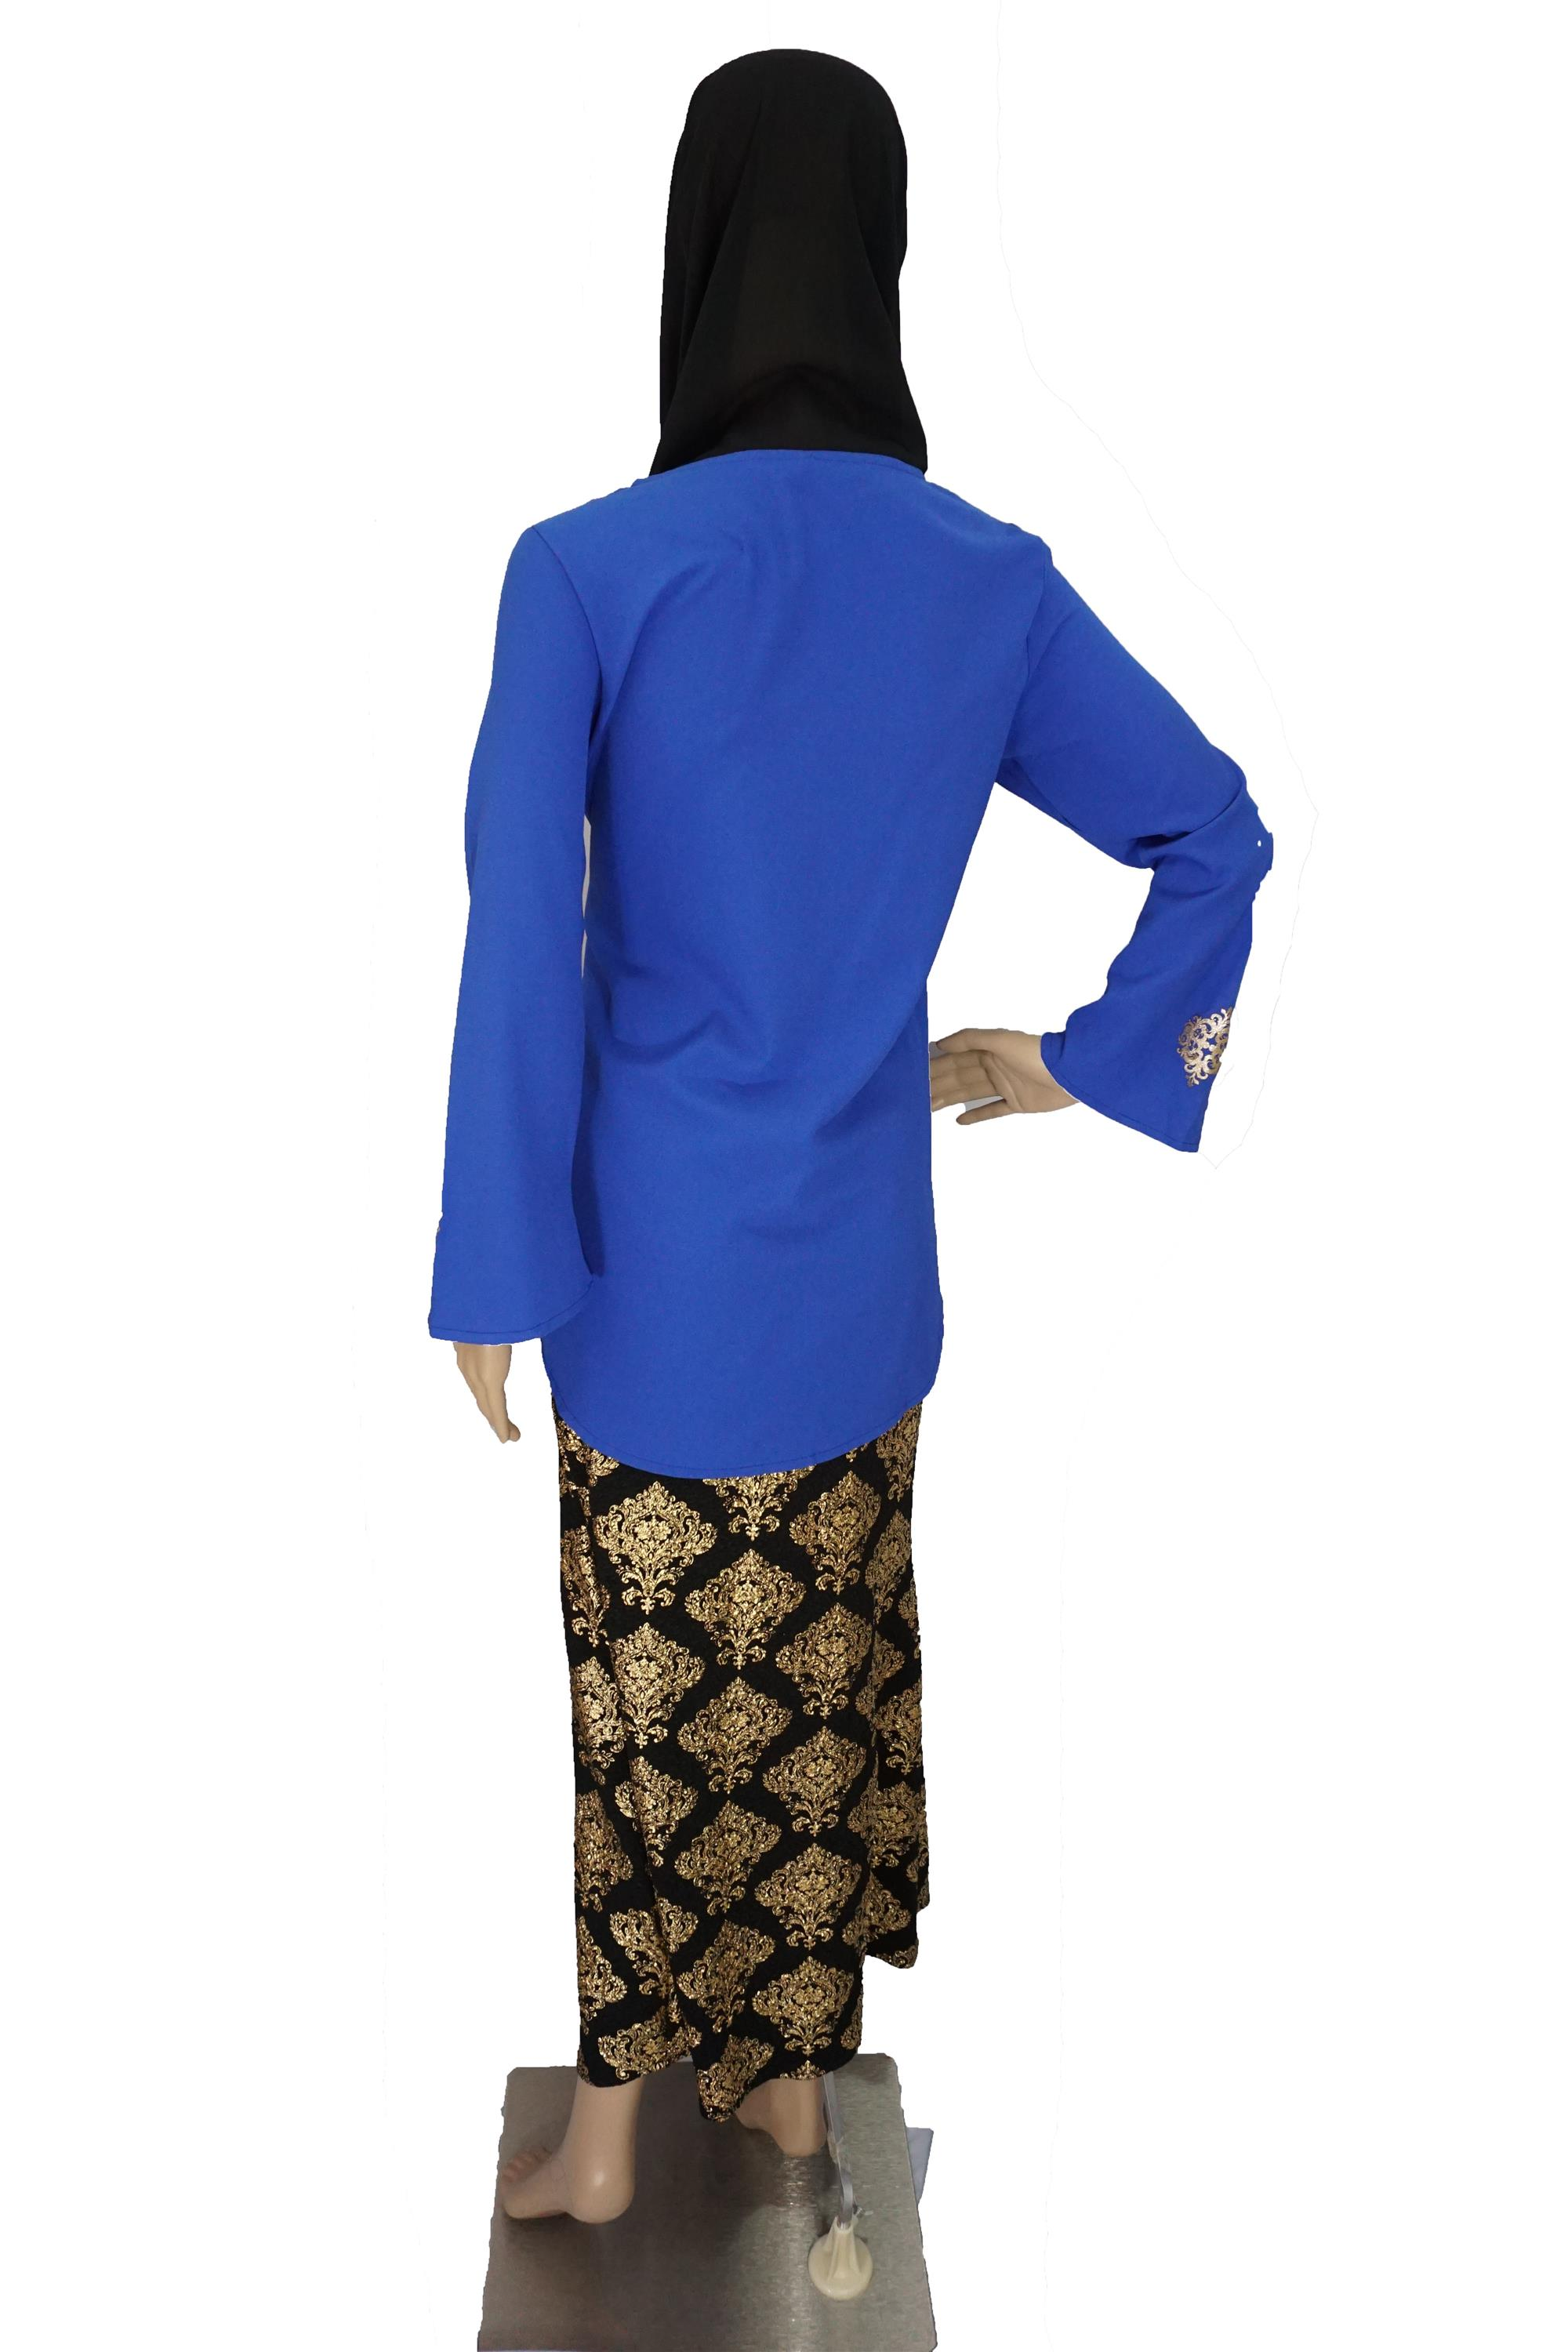 Hermosa Muslimah Top Crepe Blouse Dokoh Blue Moden #TP081BE61 001